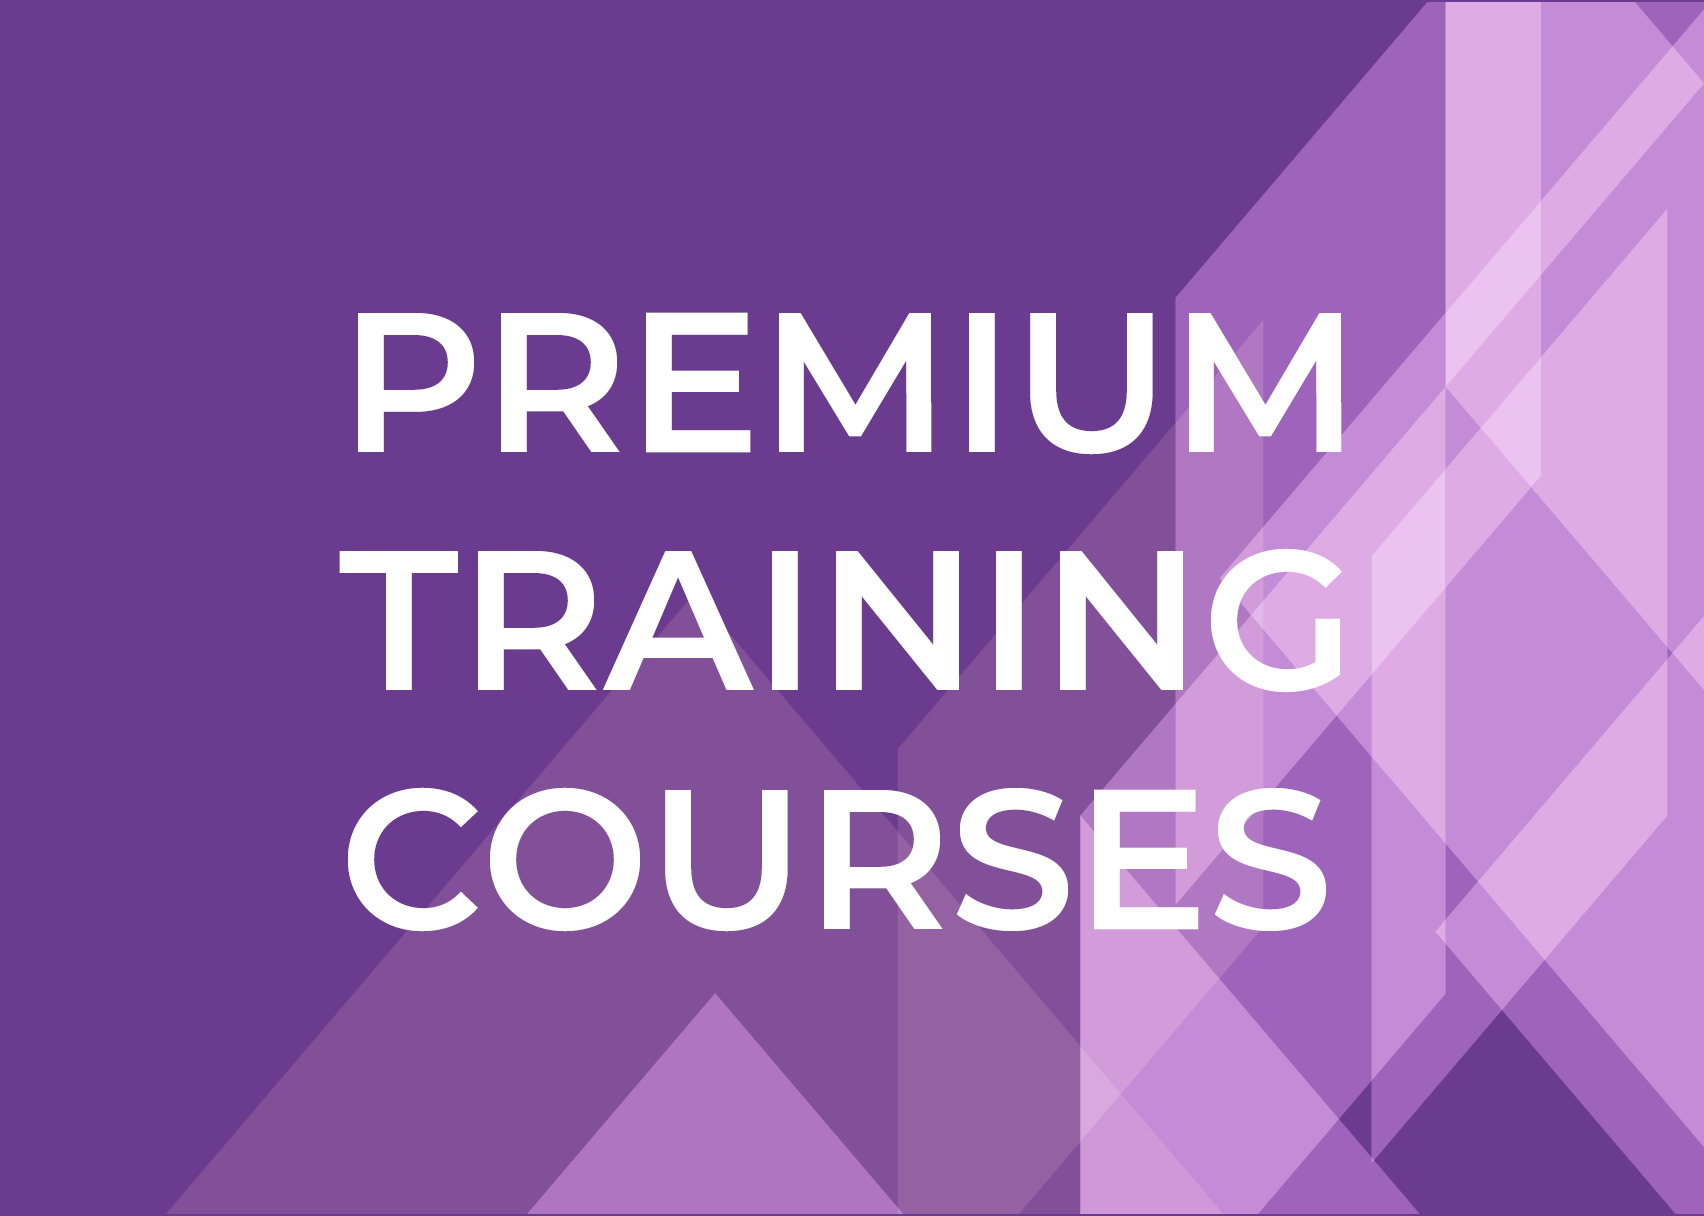 Premium Training Courses